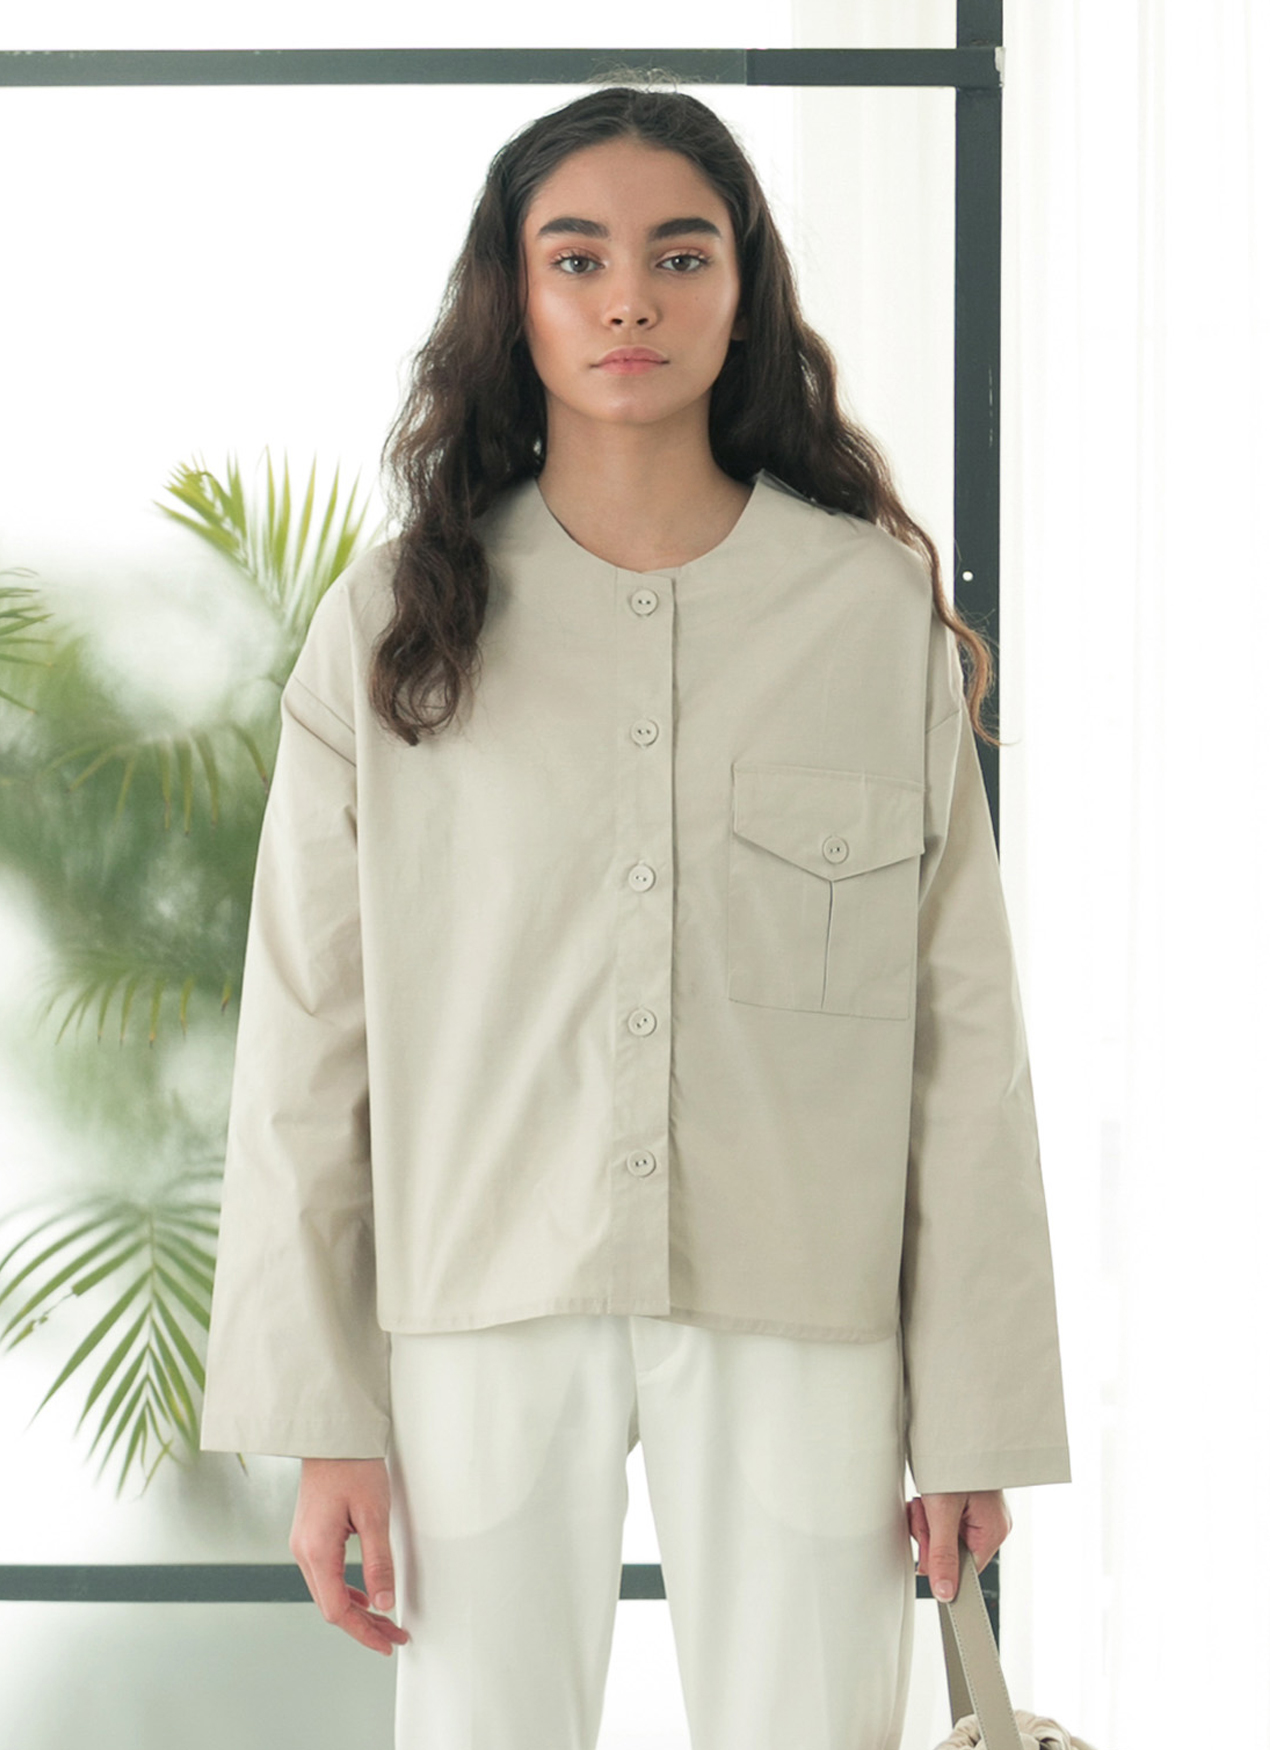 cb13a69c34a Jual Eesome Off White Figs Jumpsuit - 100% Original